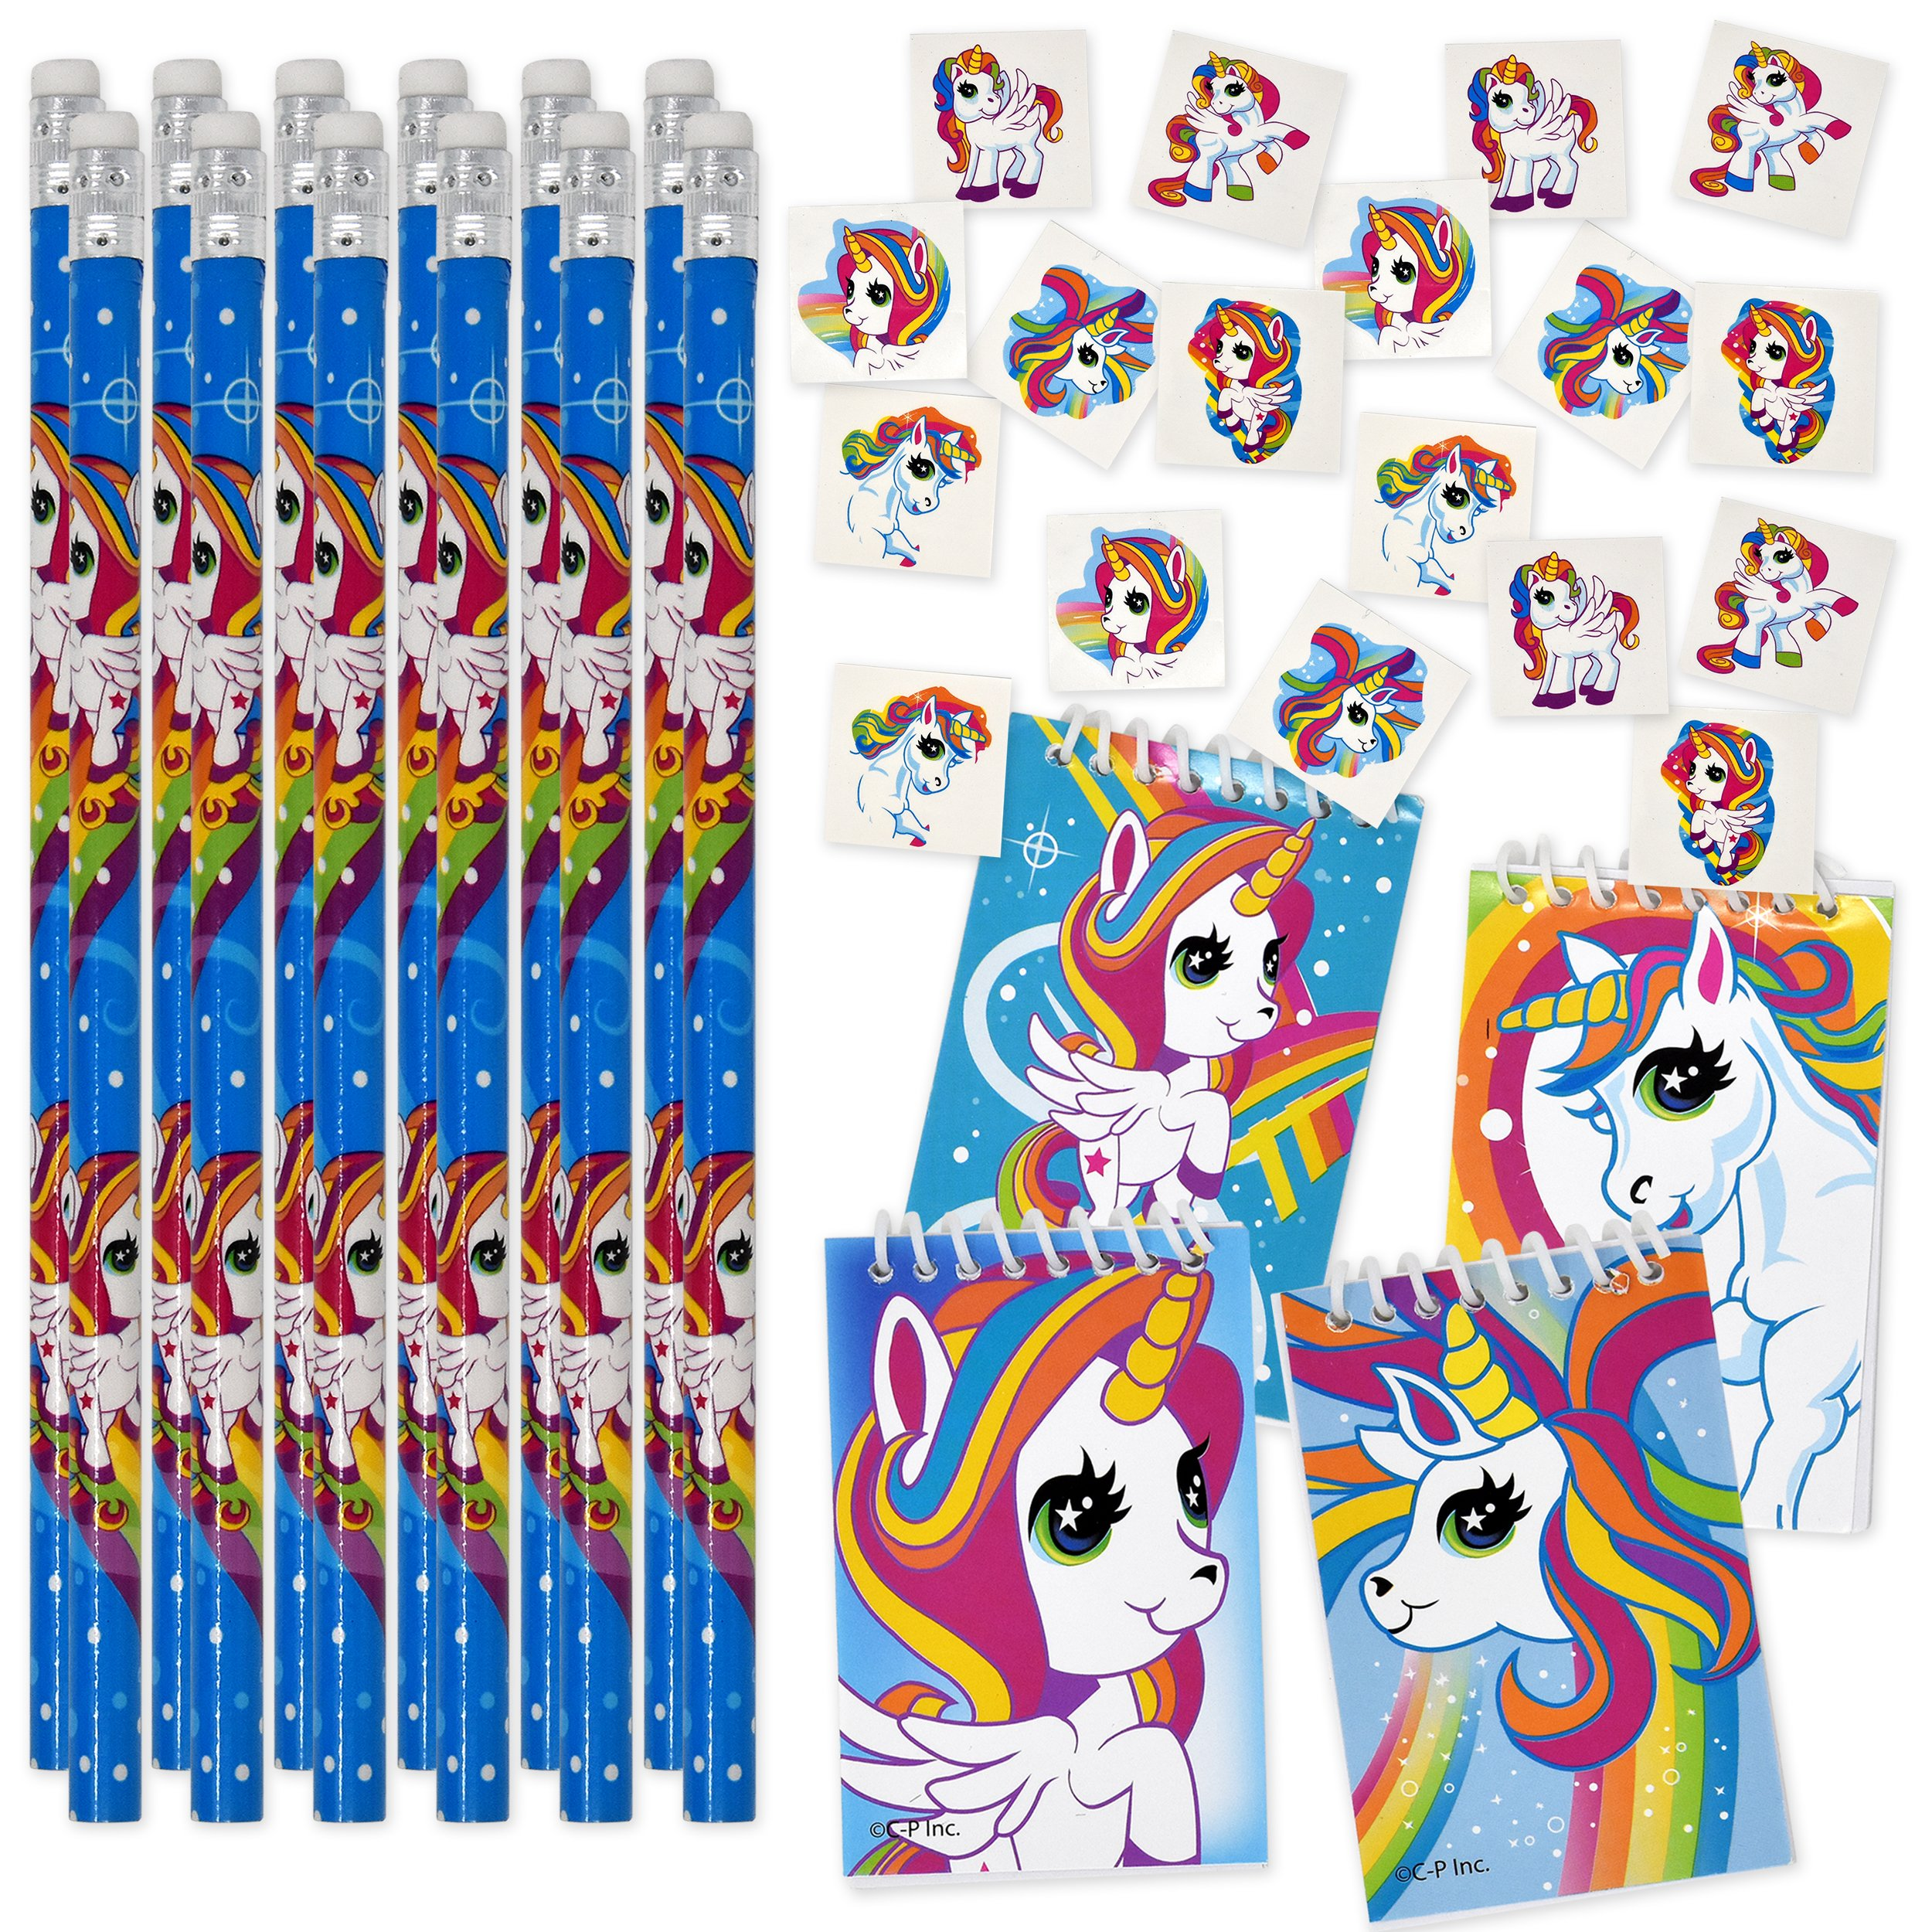 Unicorn Party Favors for Girls Rainbow Birthday Supplies Includes 144 Unicorn Temporary Tattoos 12 Unicorns Pencils and 12 Unicorn Notepads for Kids School Classroom Favor Set by Gift Boutique